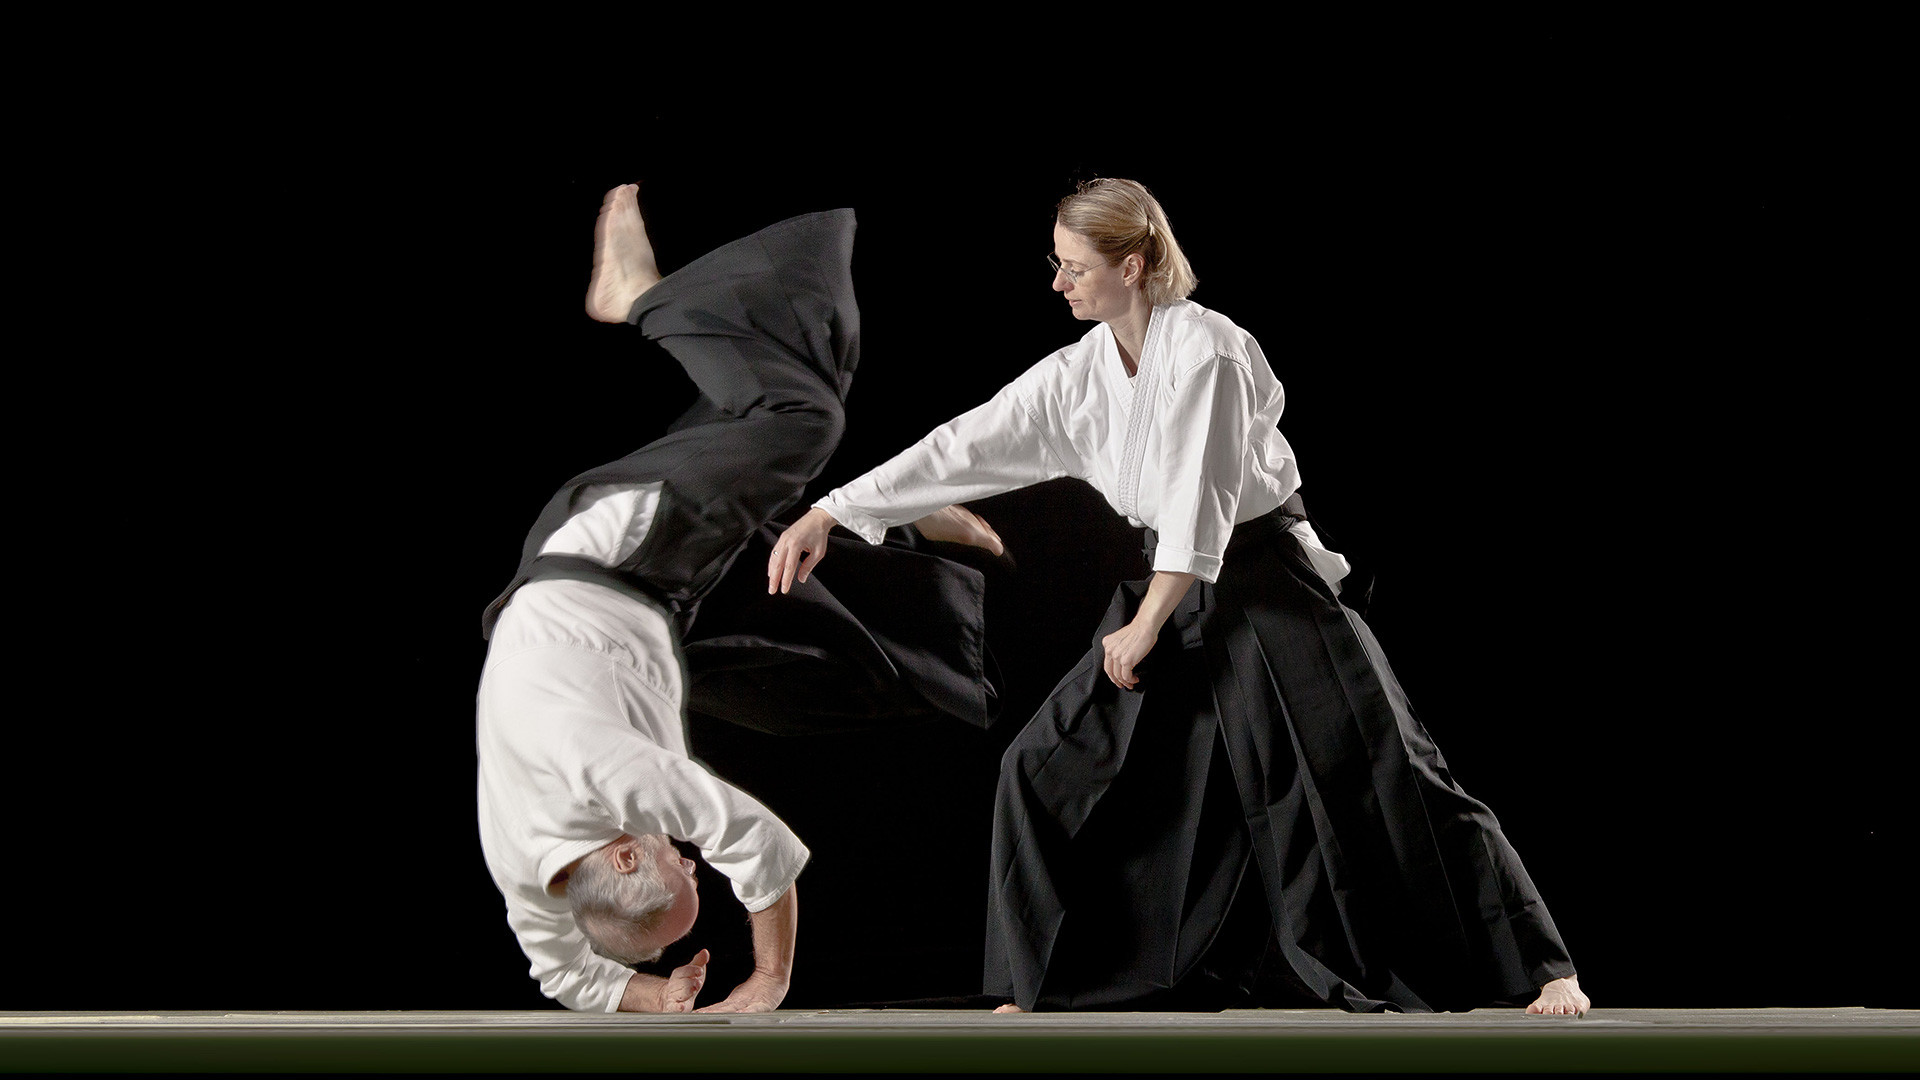 Image Result For Aikido Wallpaper Images